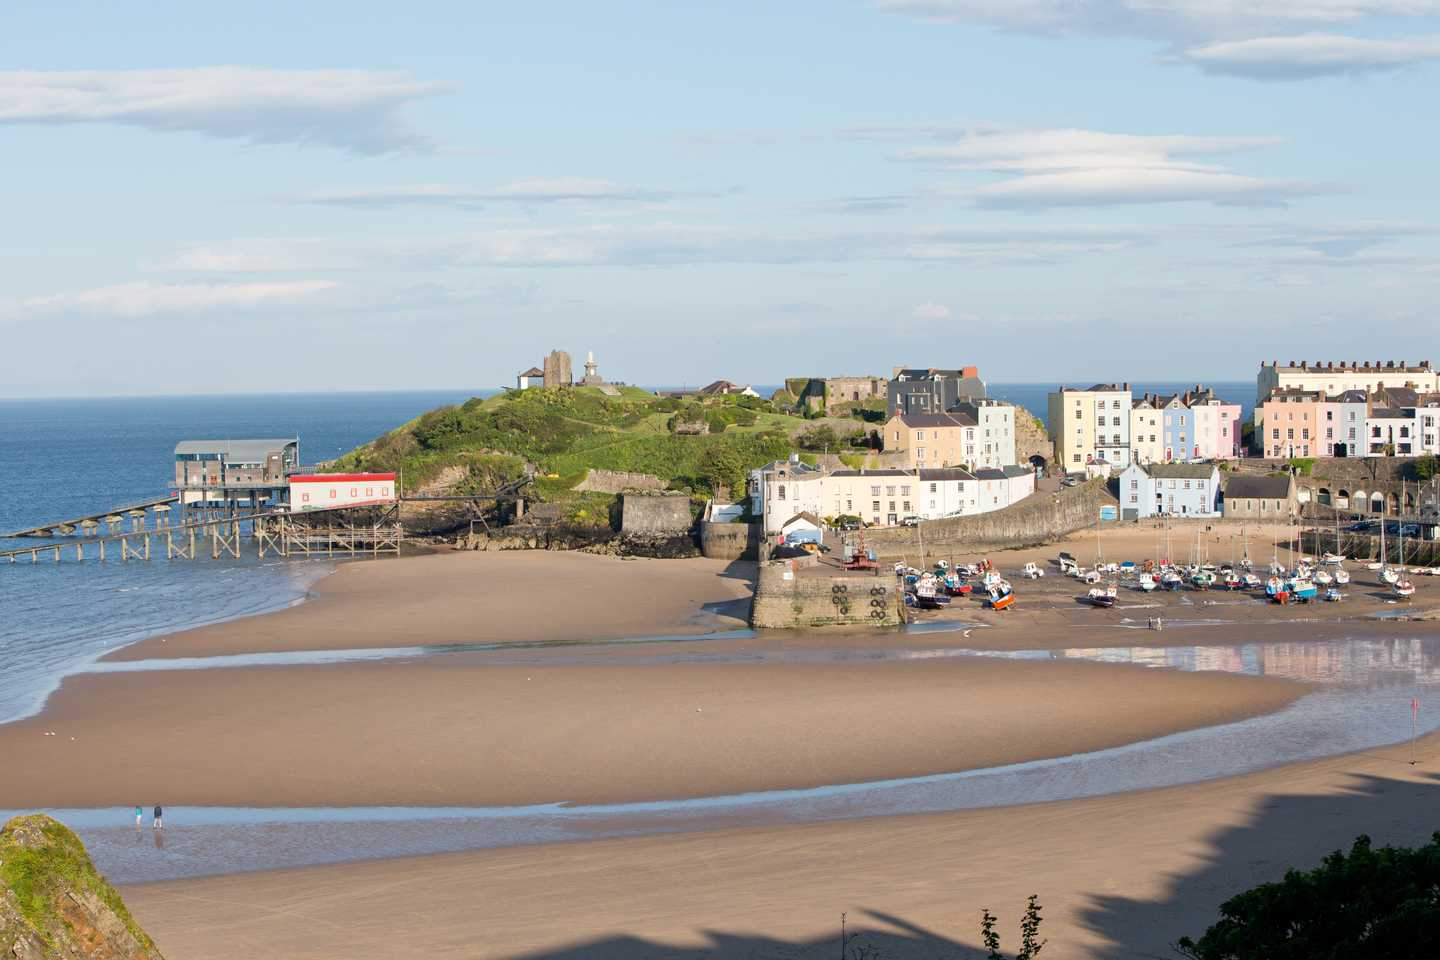 Nearby Tenby beach